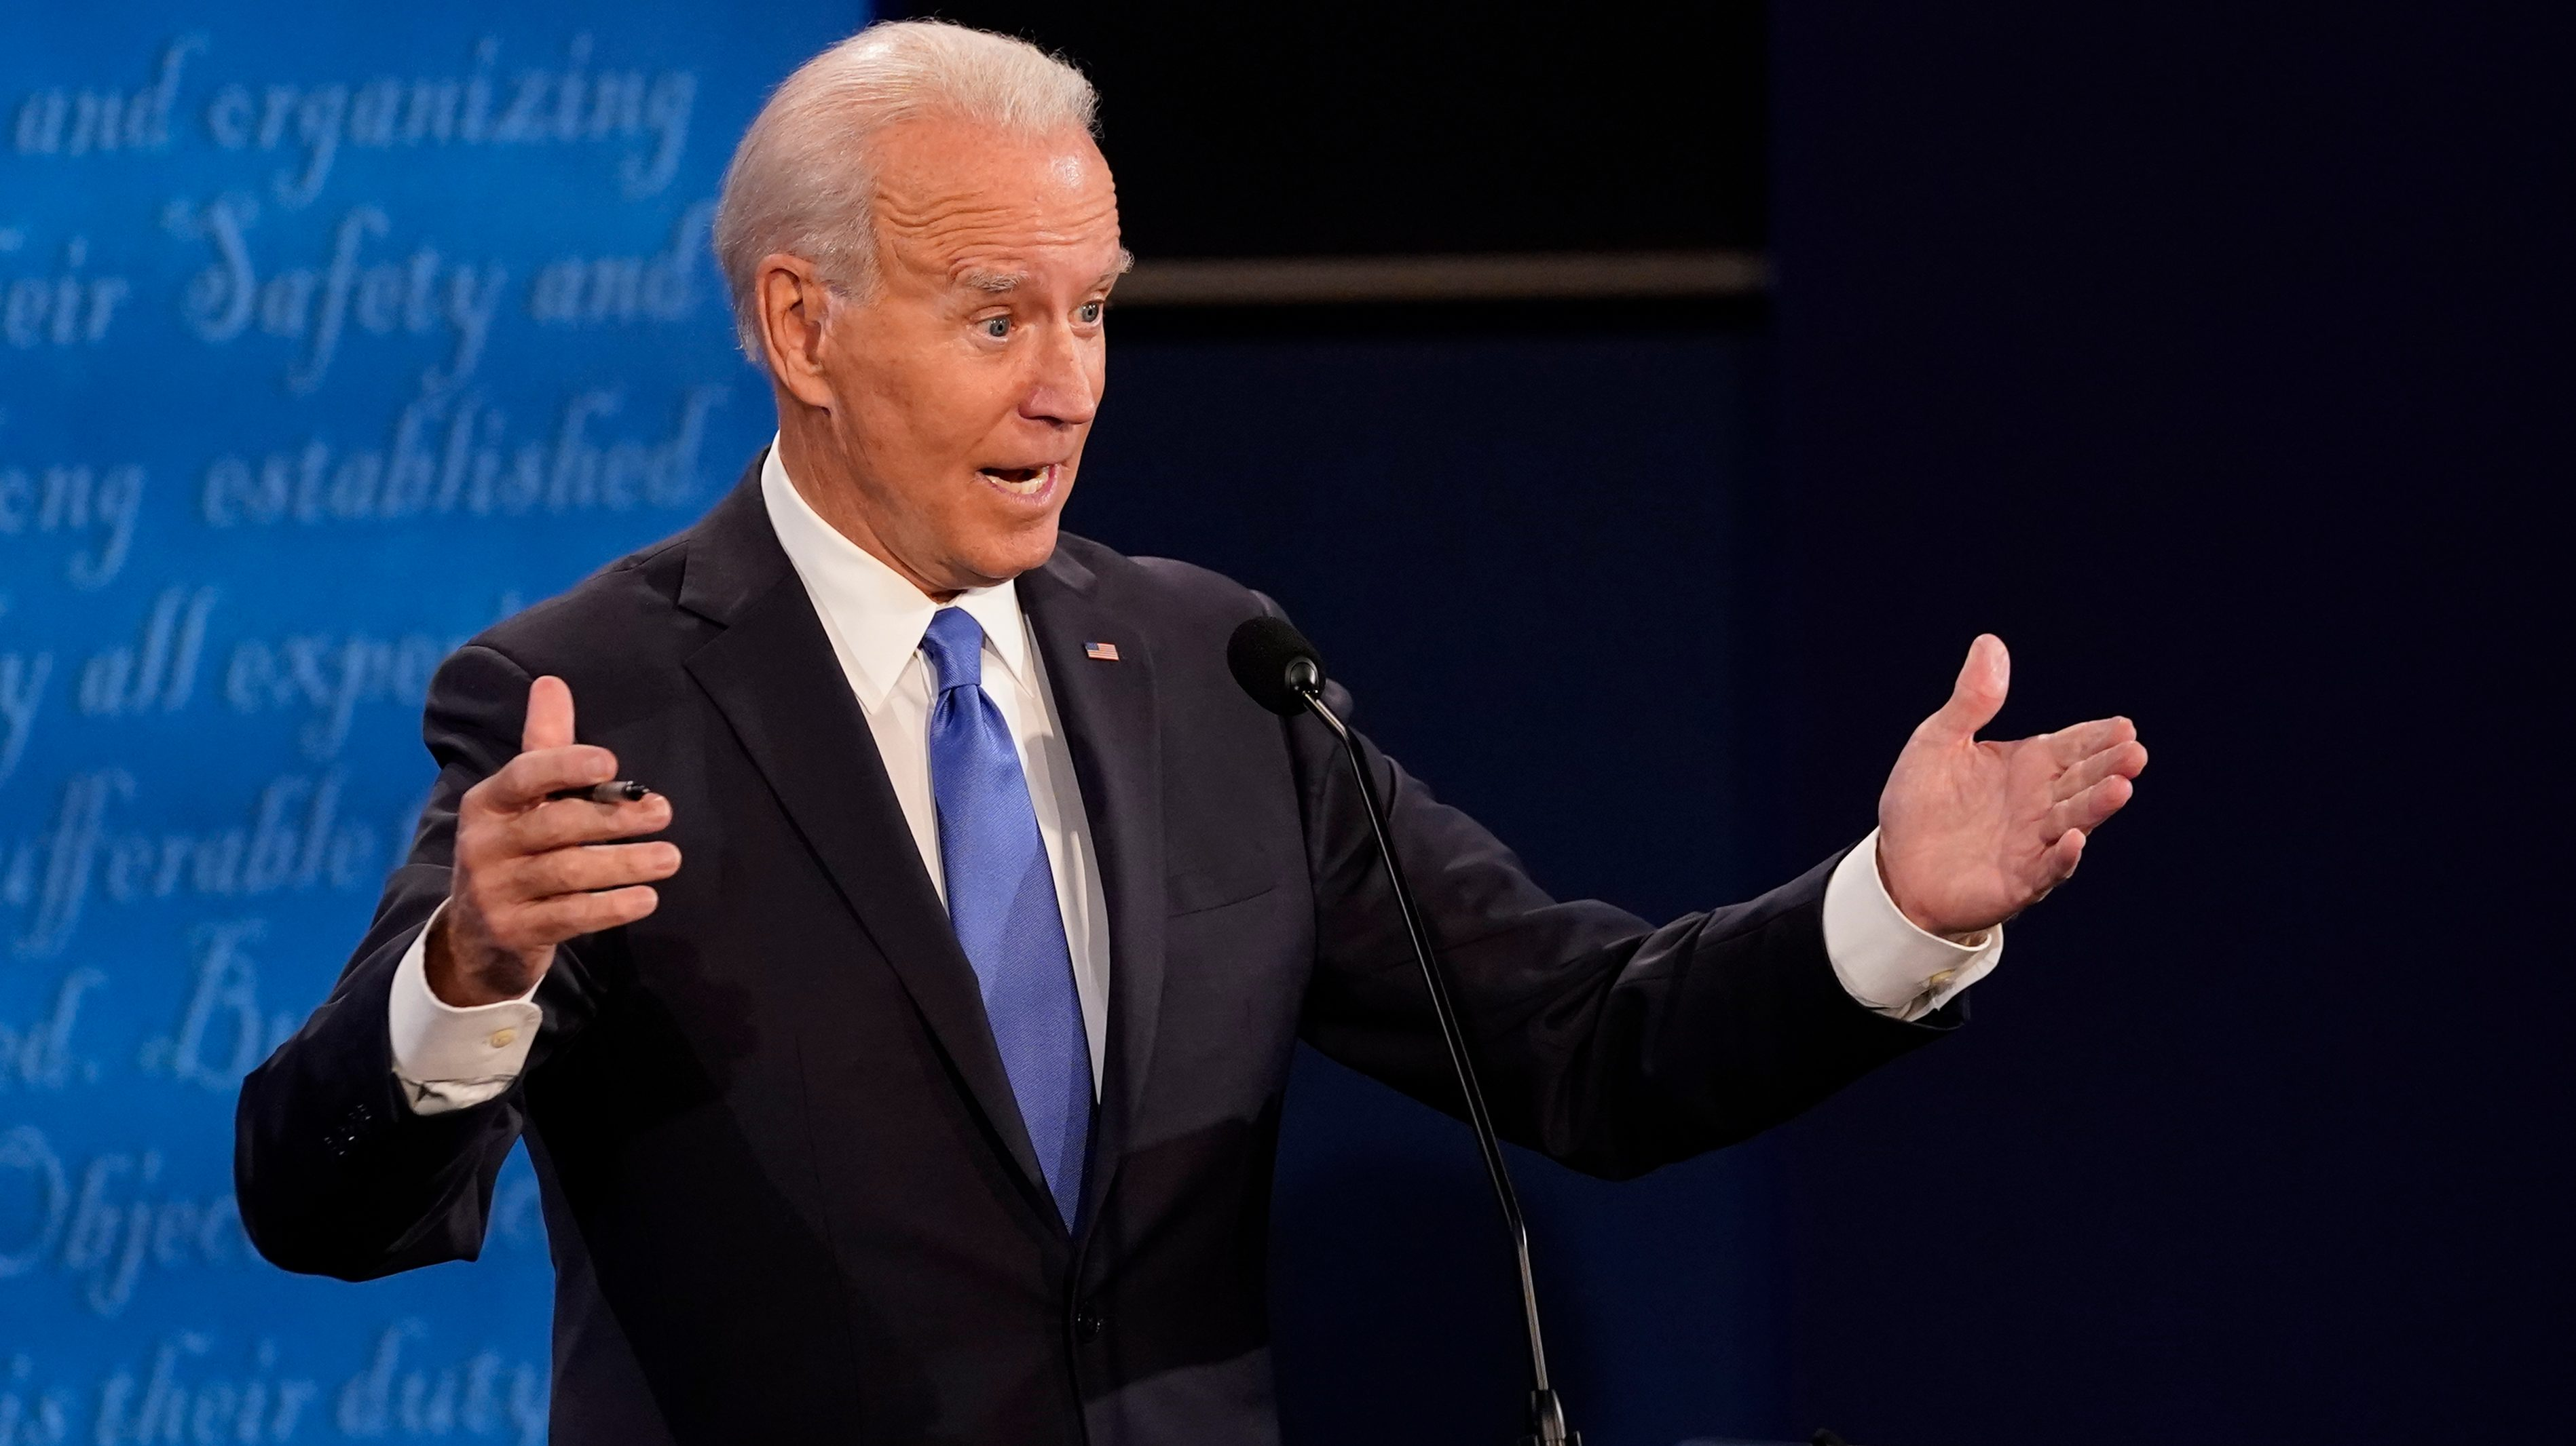 Joe Biden second presidential debate